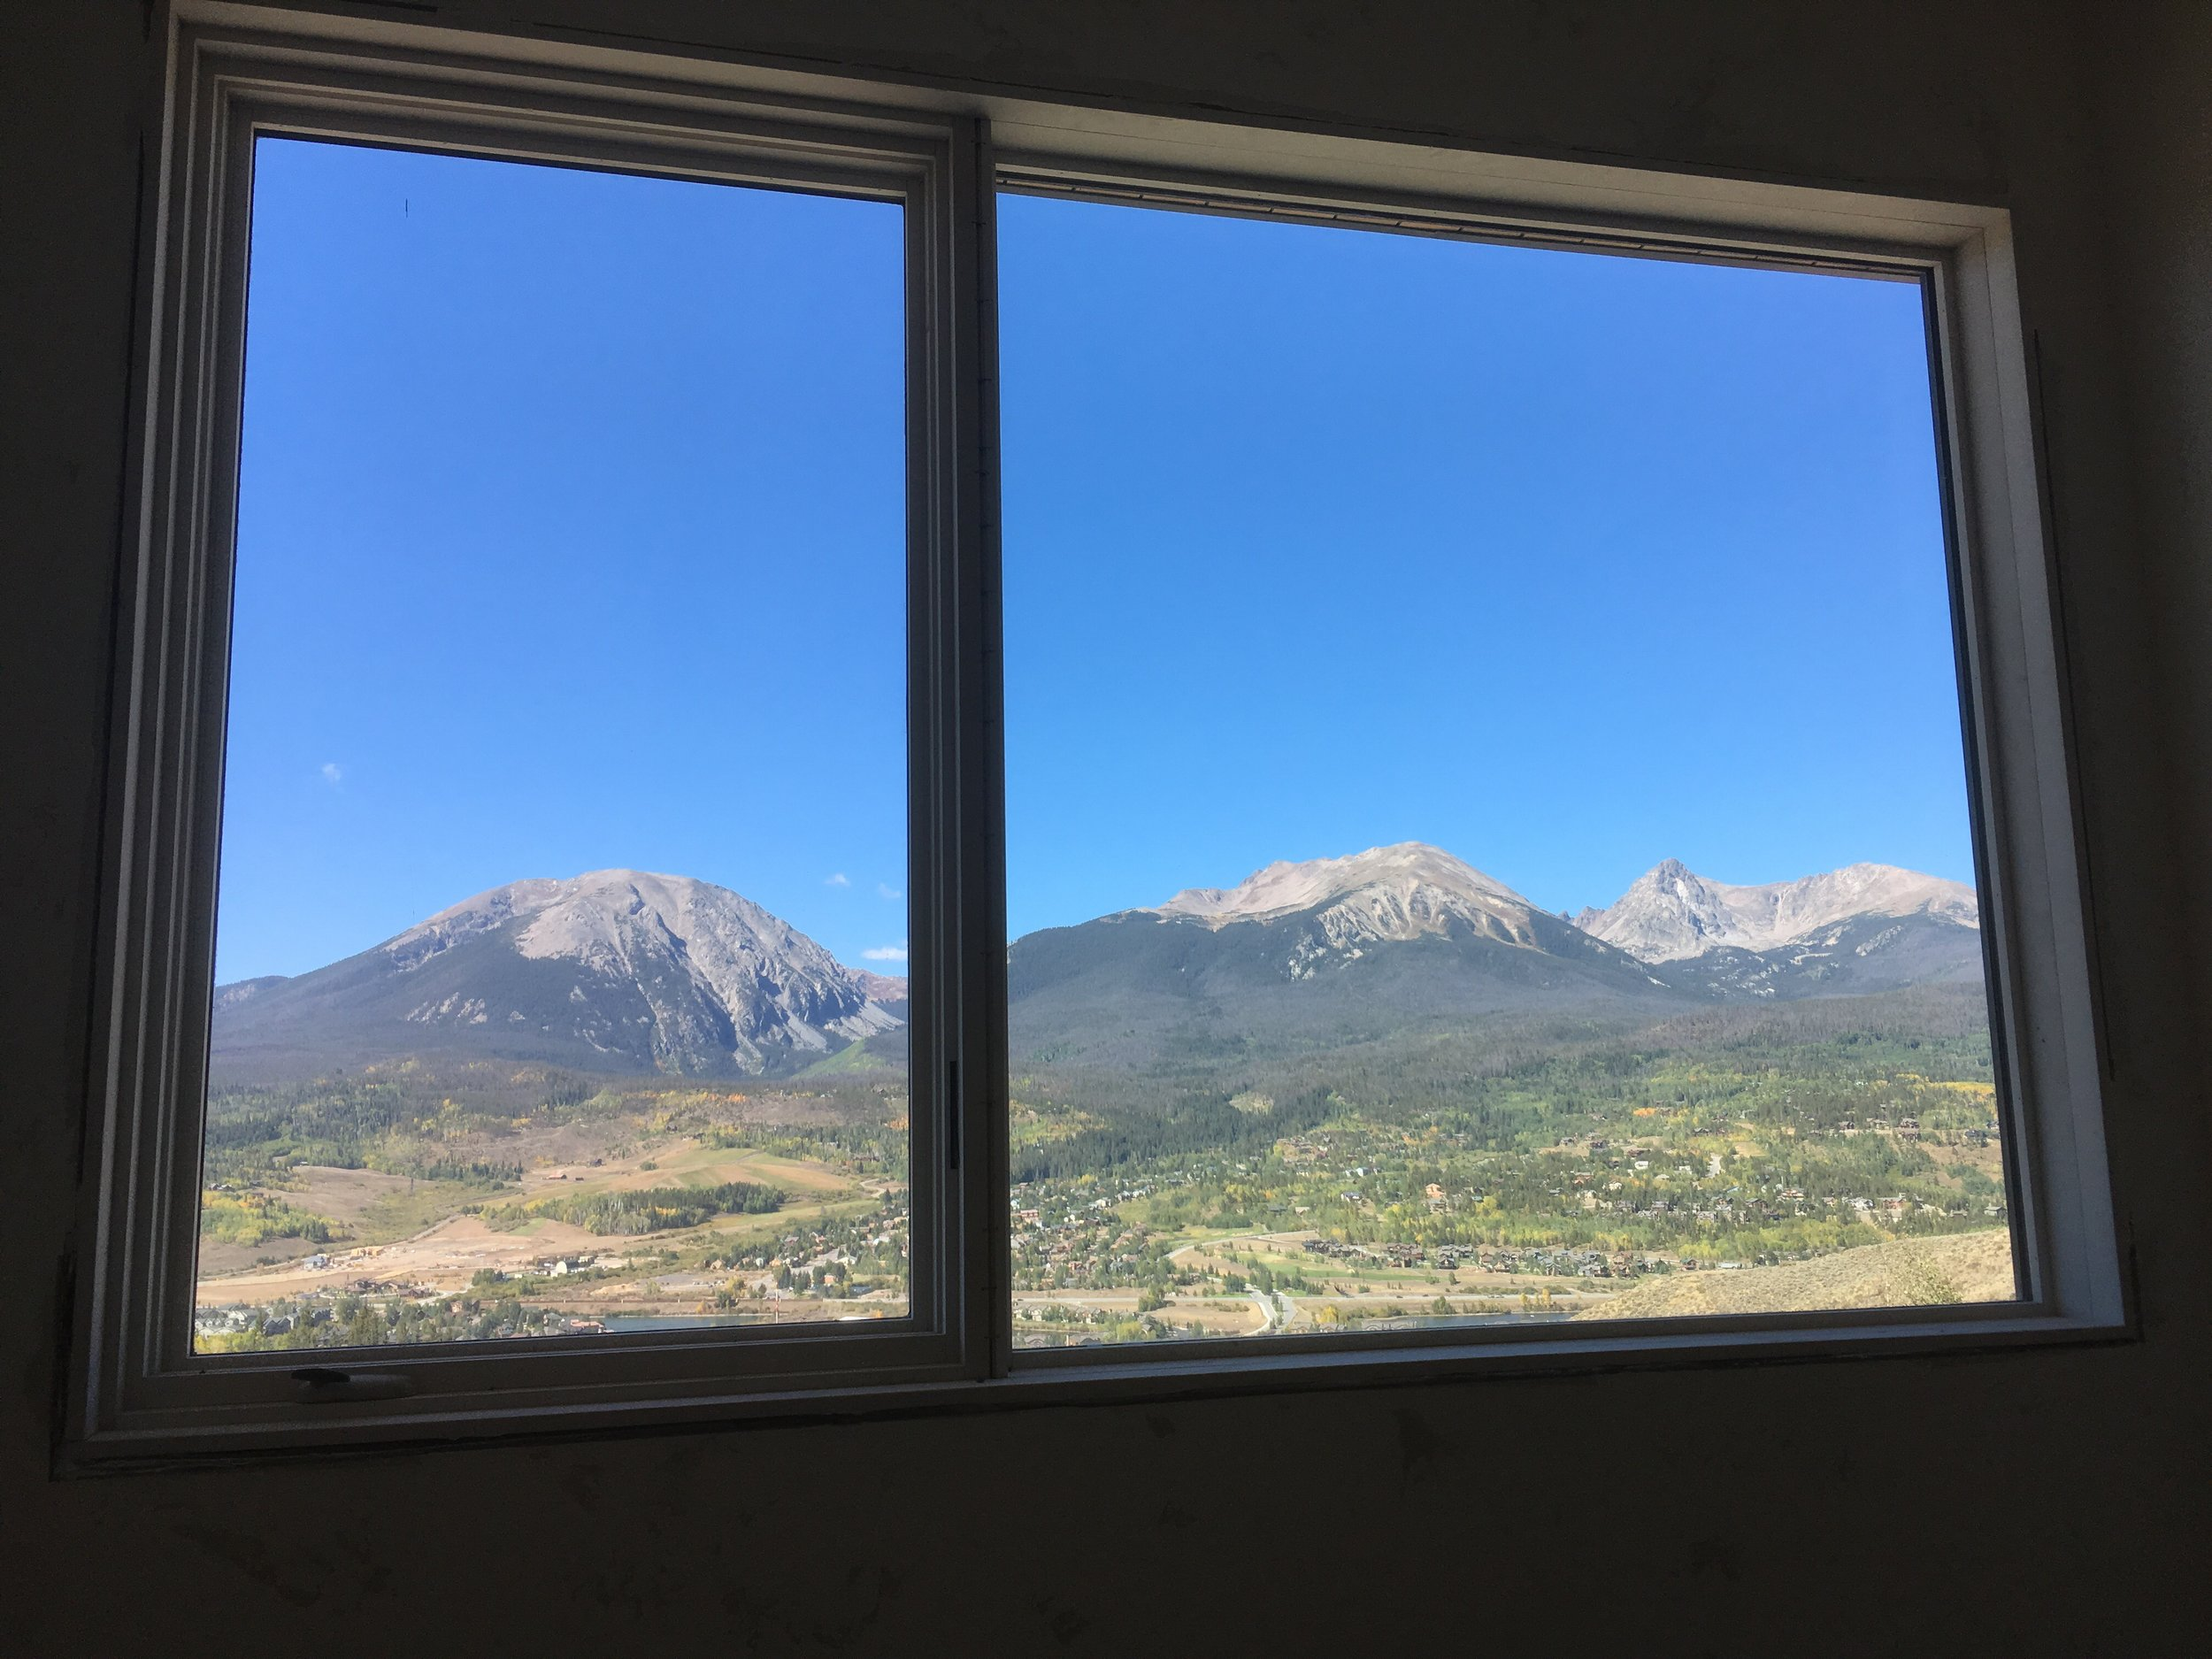 The morning view from the downstairs guestroom